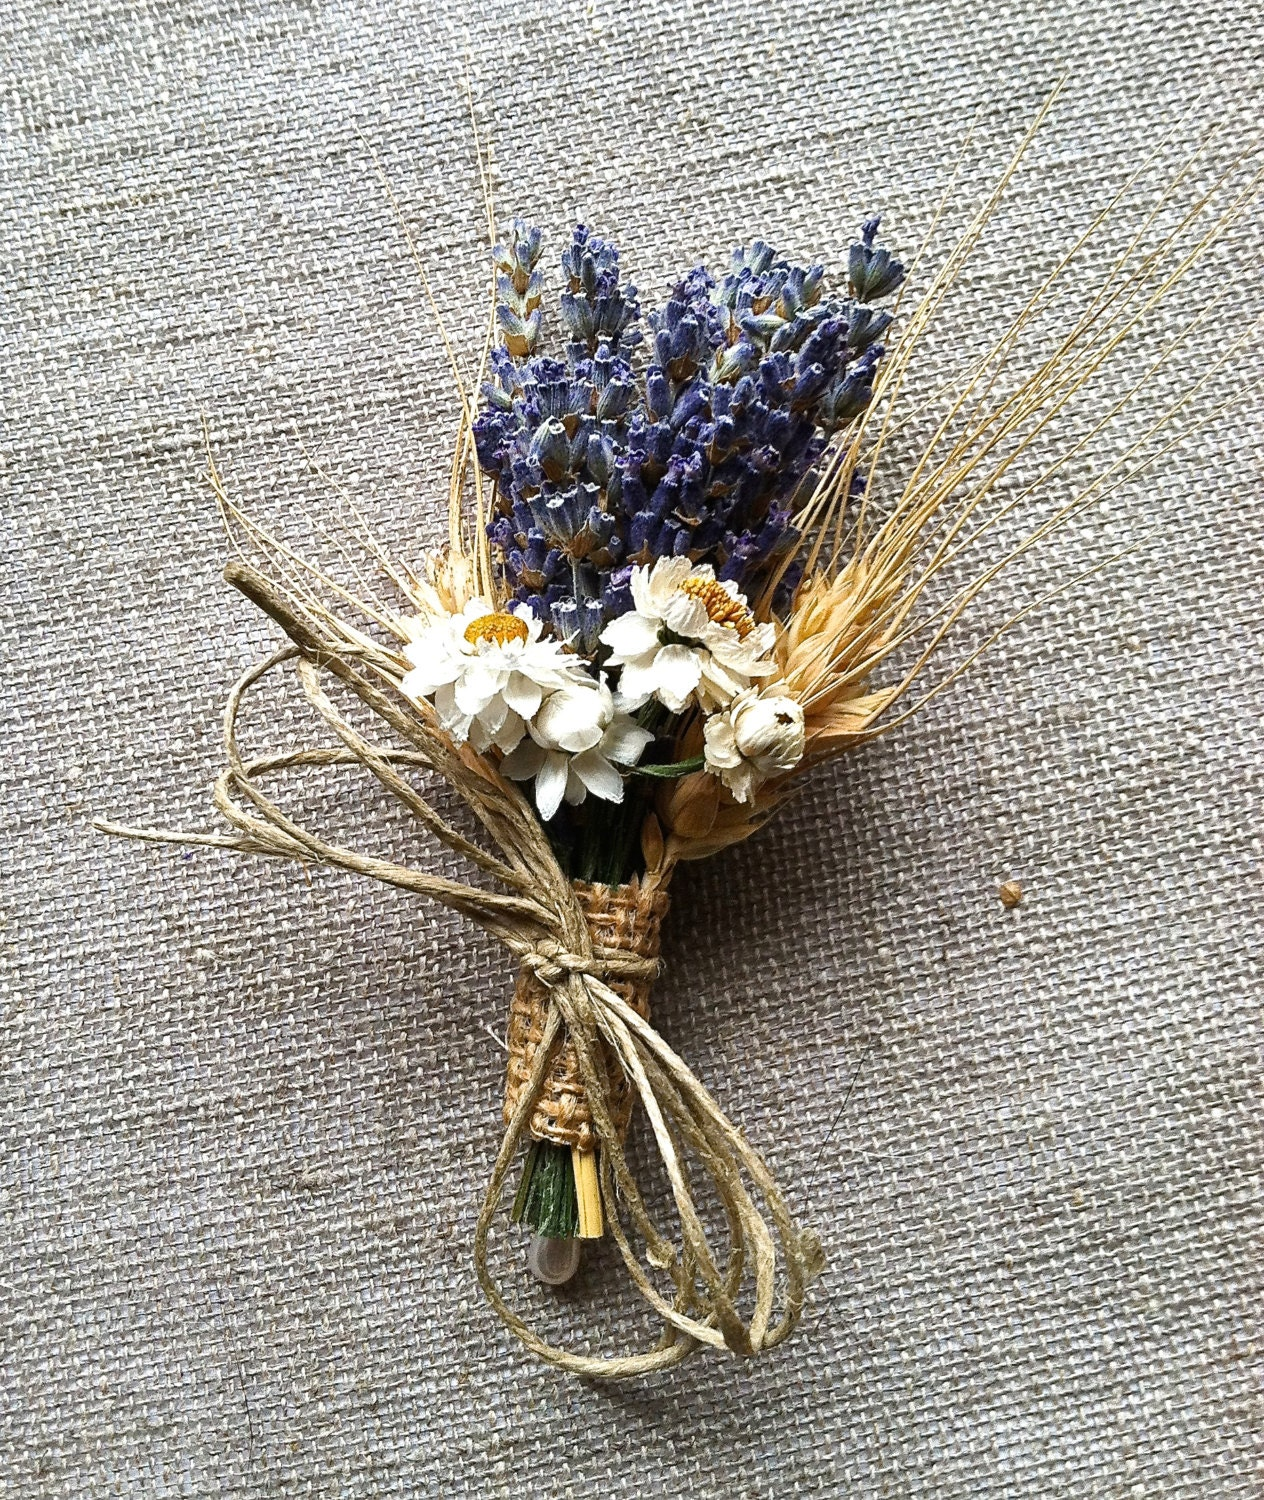 Fall Wedding Boutonniere Ideas: Bridal Wedding Pin On Or Wrist Corsage Or Boutonniere Of